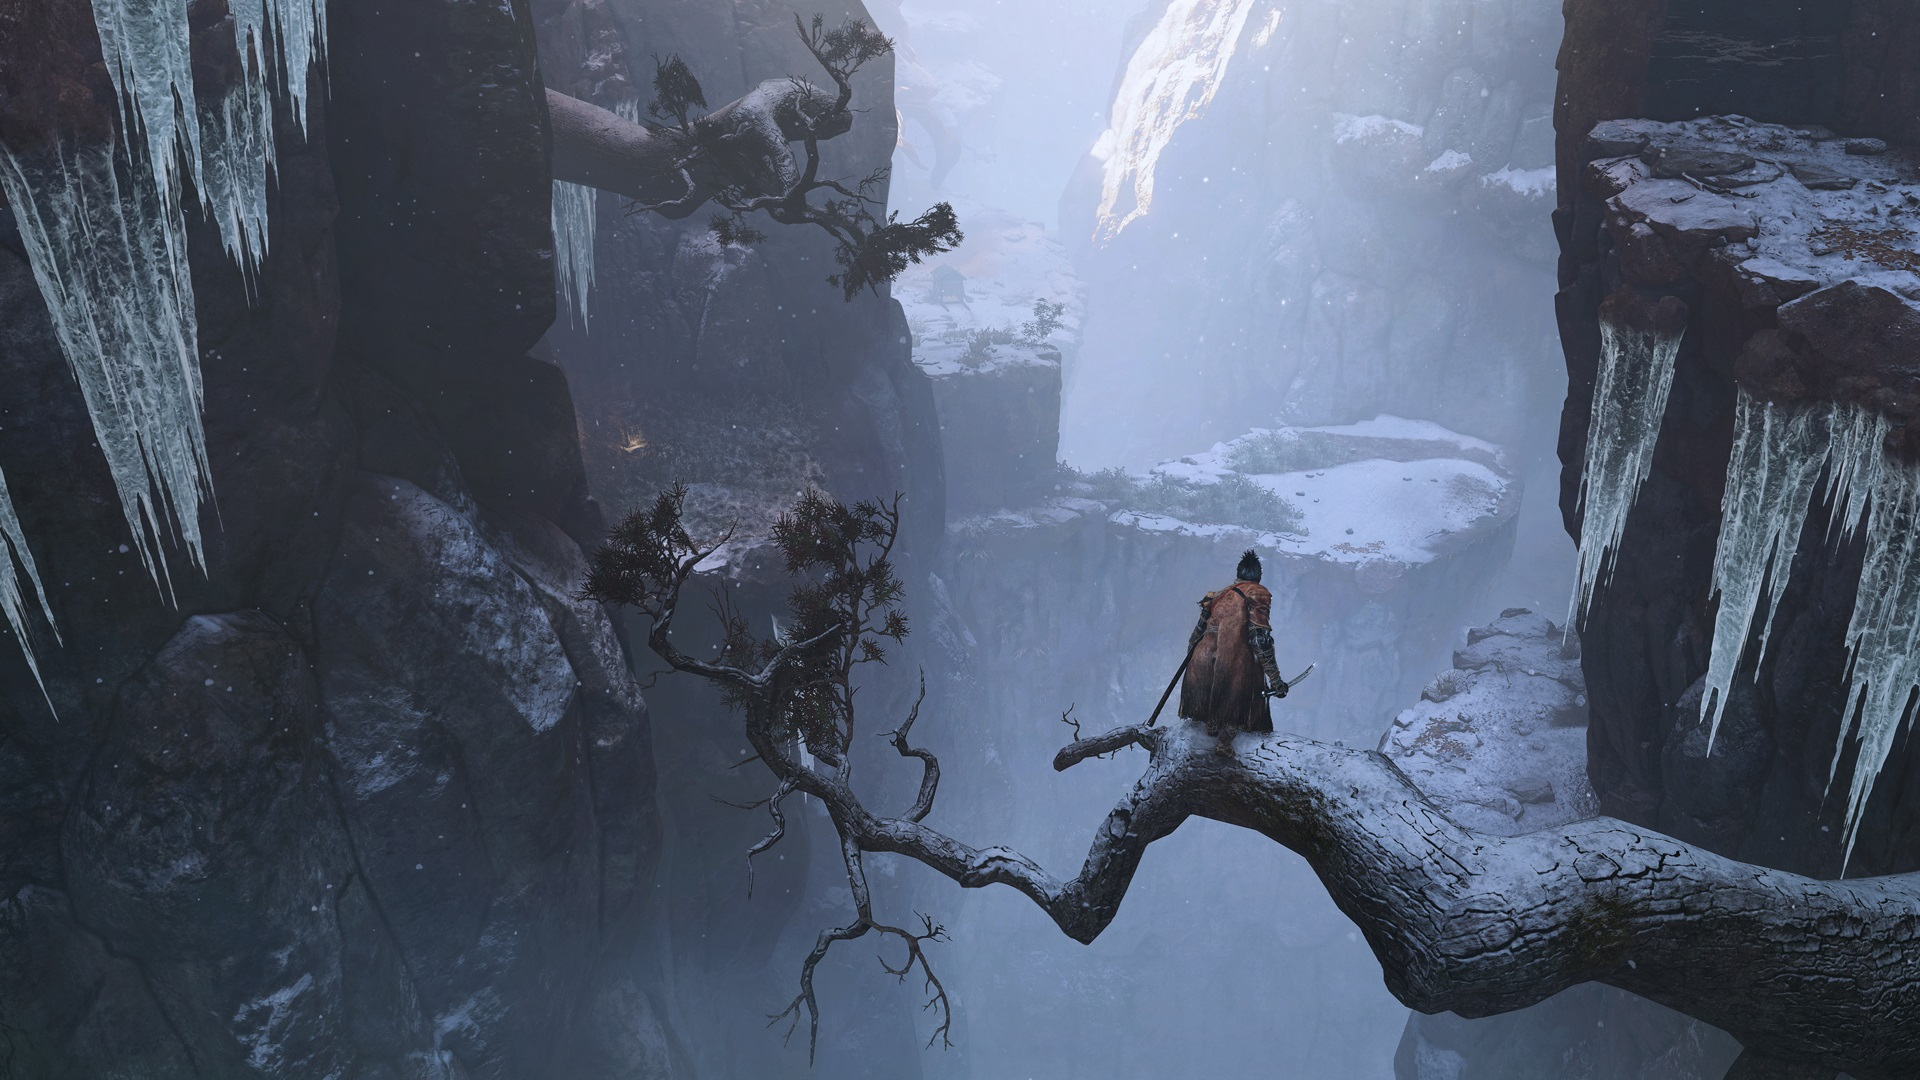 sekiro - photo #23